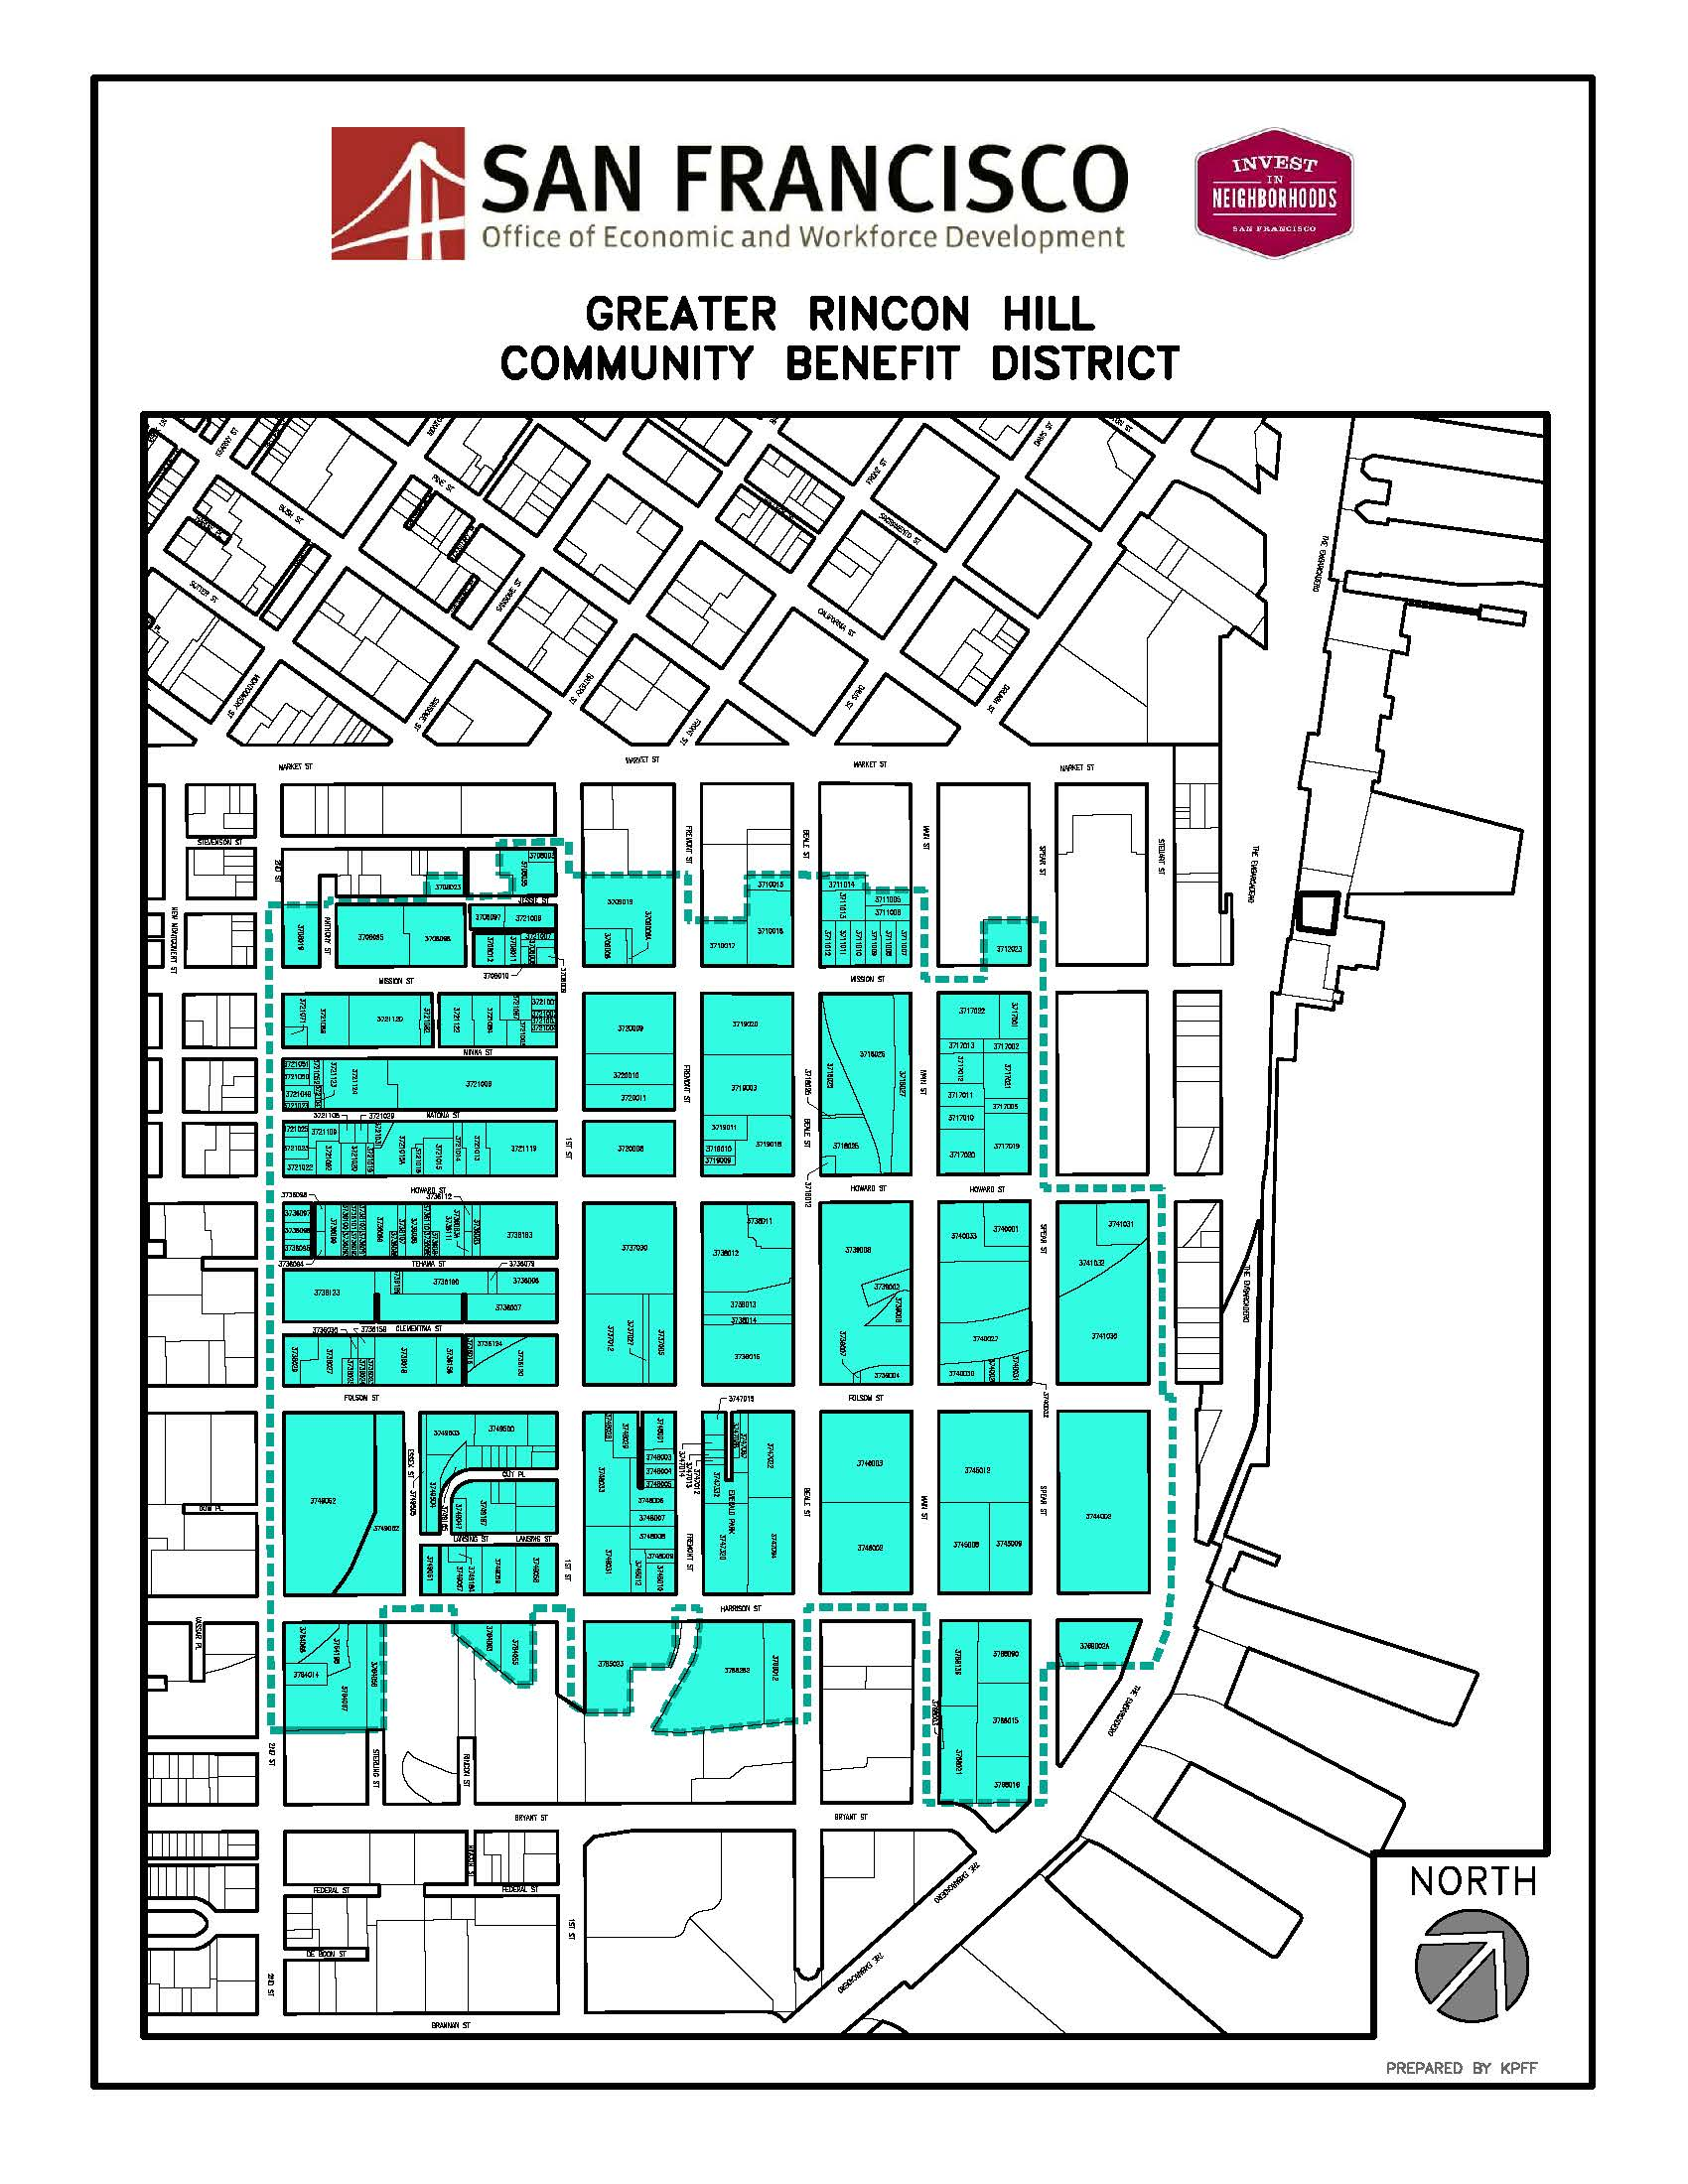 Map of Greater Rincon Hill Community Benefit District